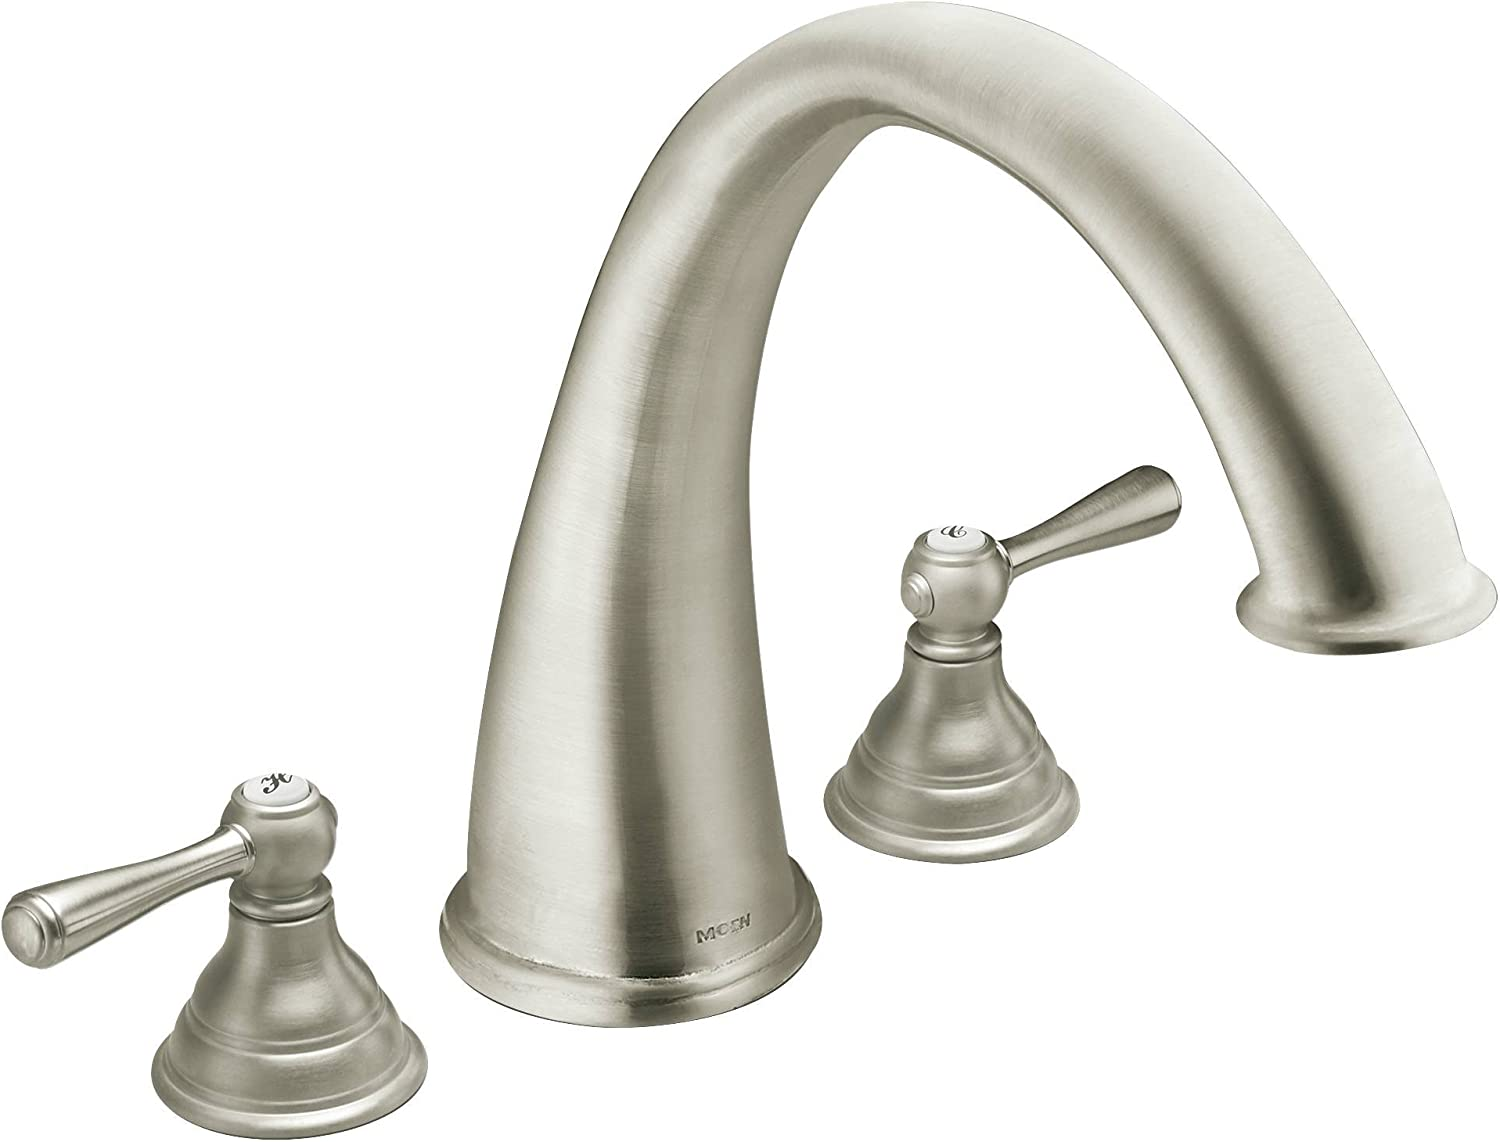 Moen T920bn Kingsley Two Handle Deck Mount Roman Tub Faucet Trim Kit Valve Required Brushed Nickel Tub Filler Faucets Amazon Com